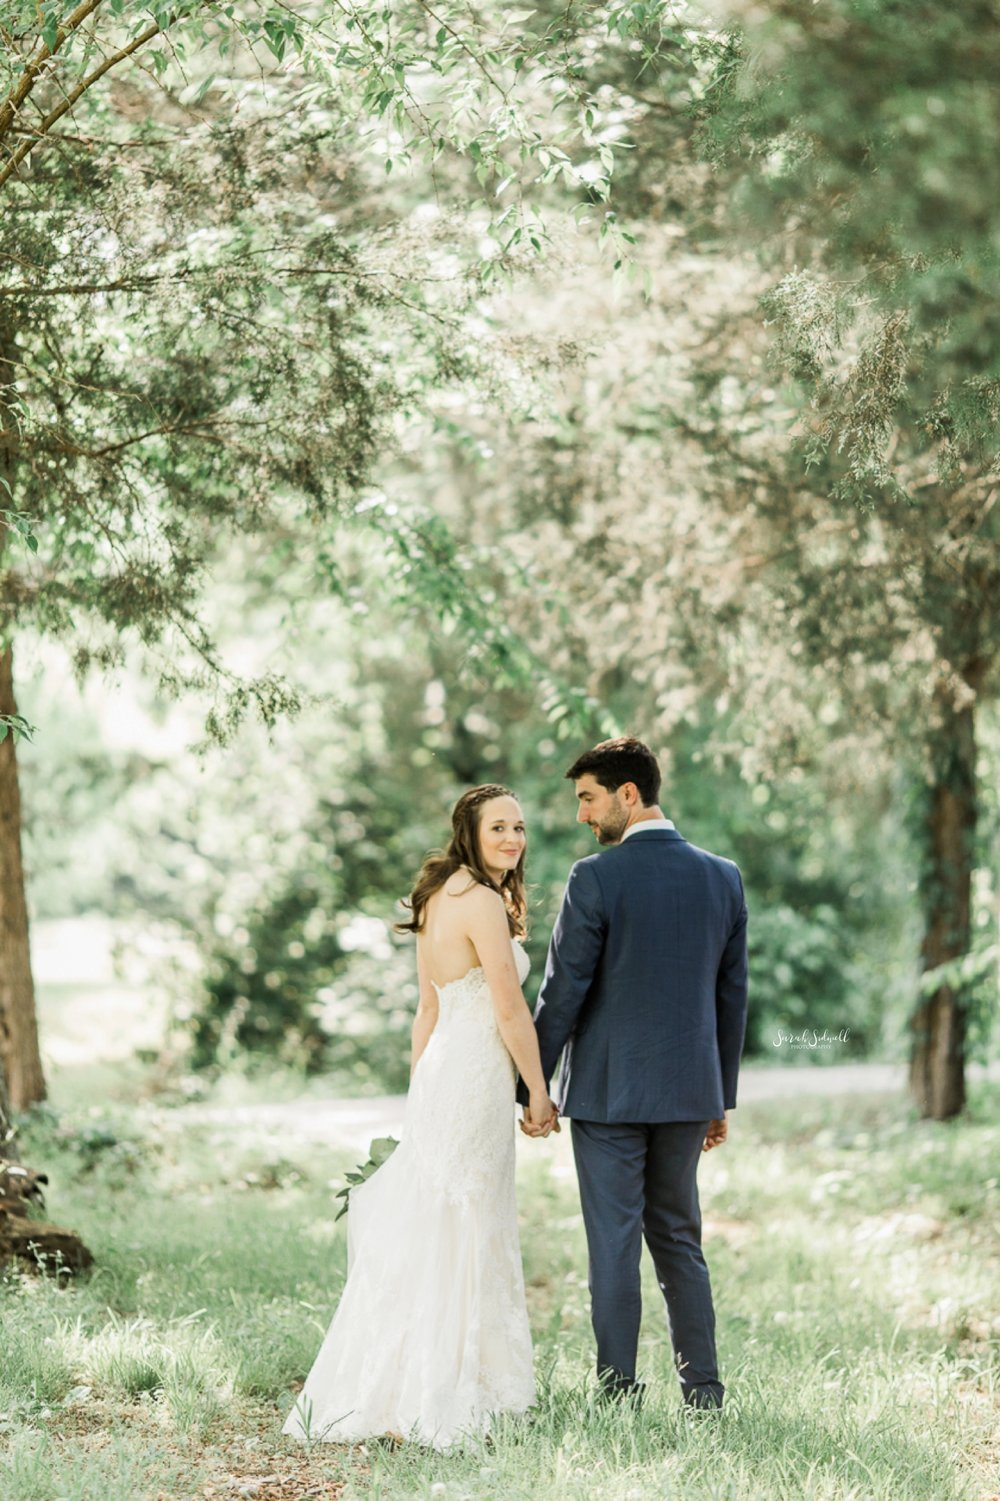 A newlywed couple take a walk under large trees.